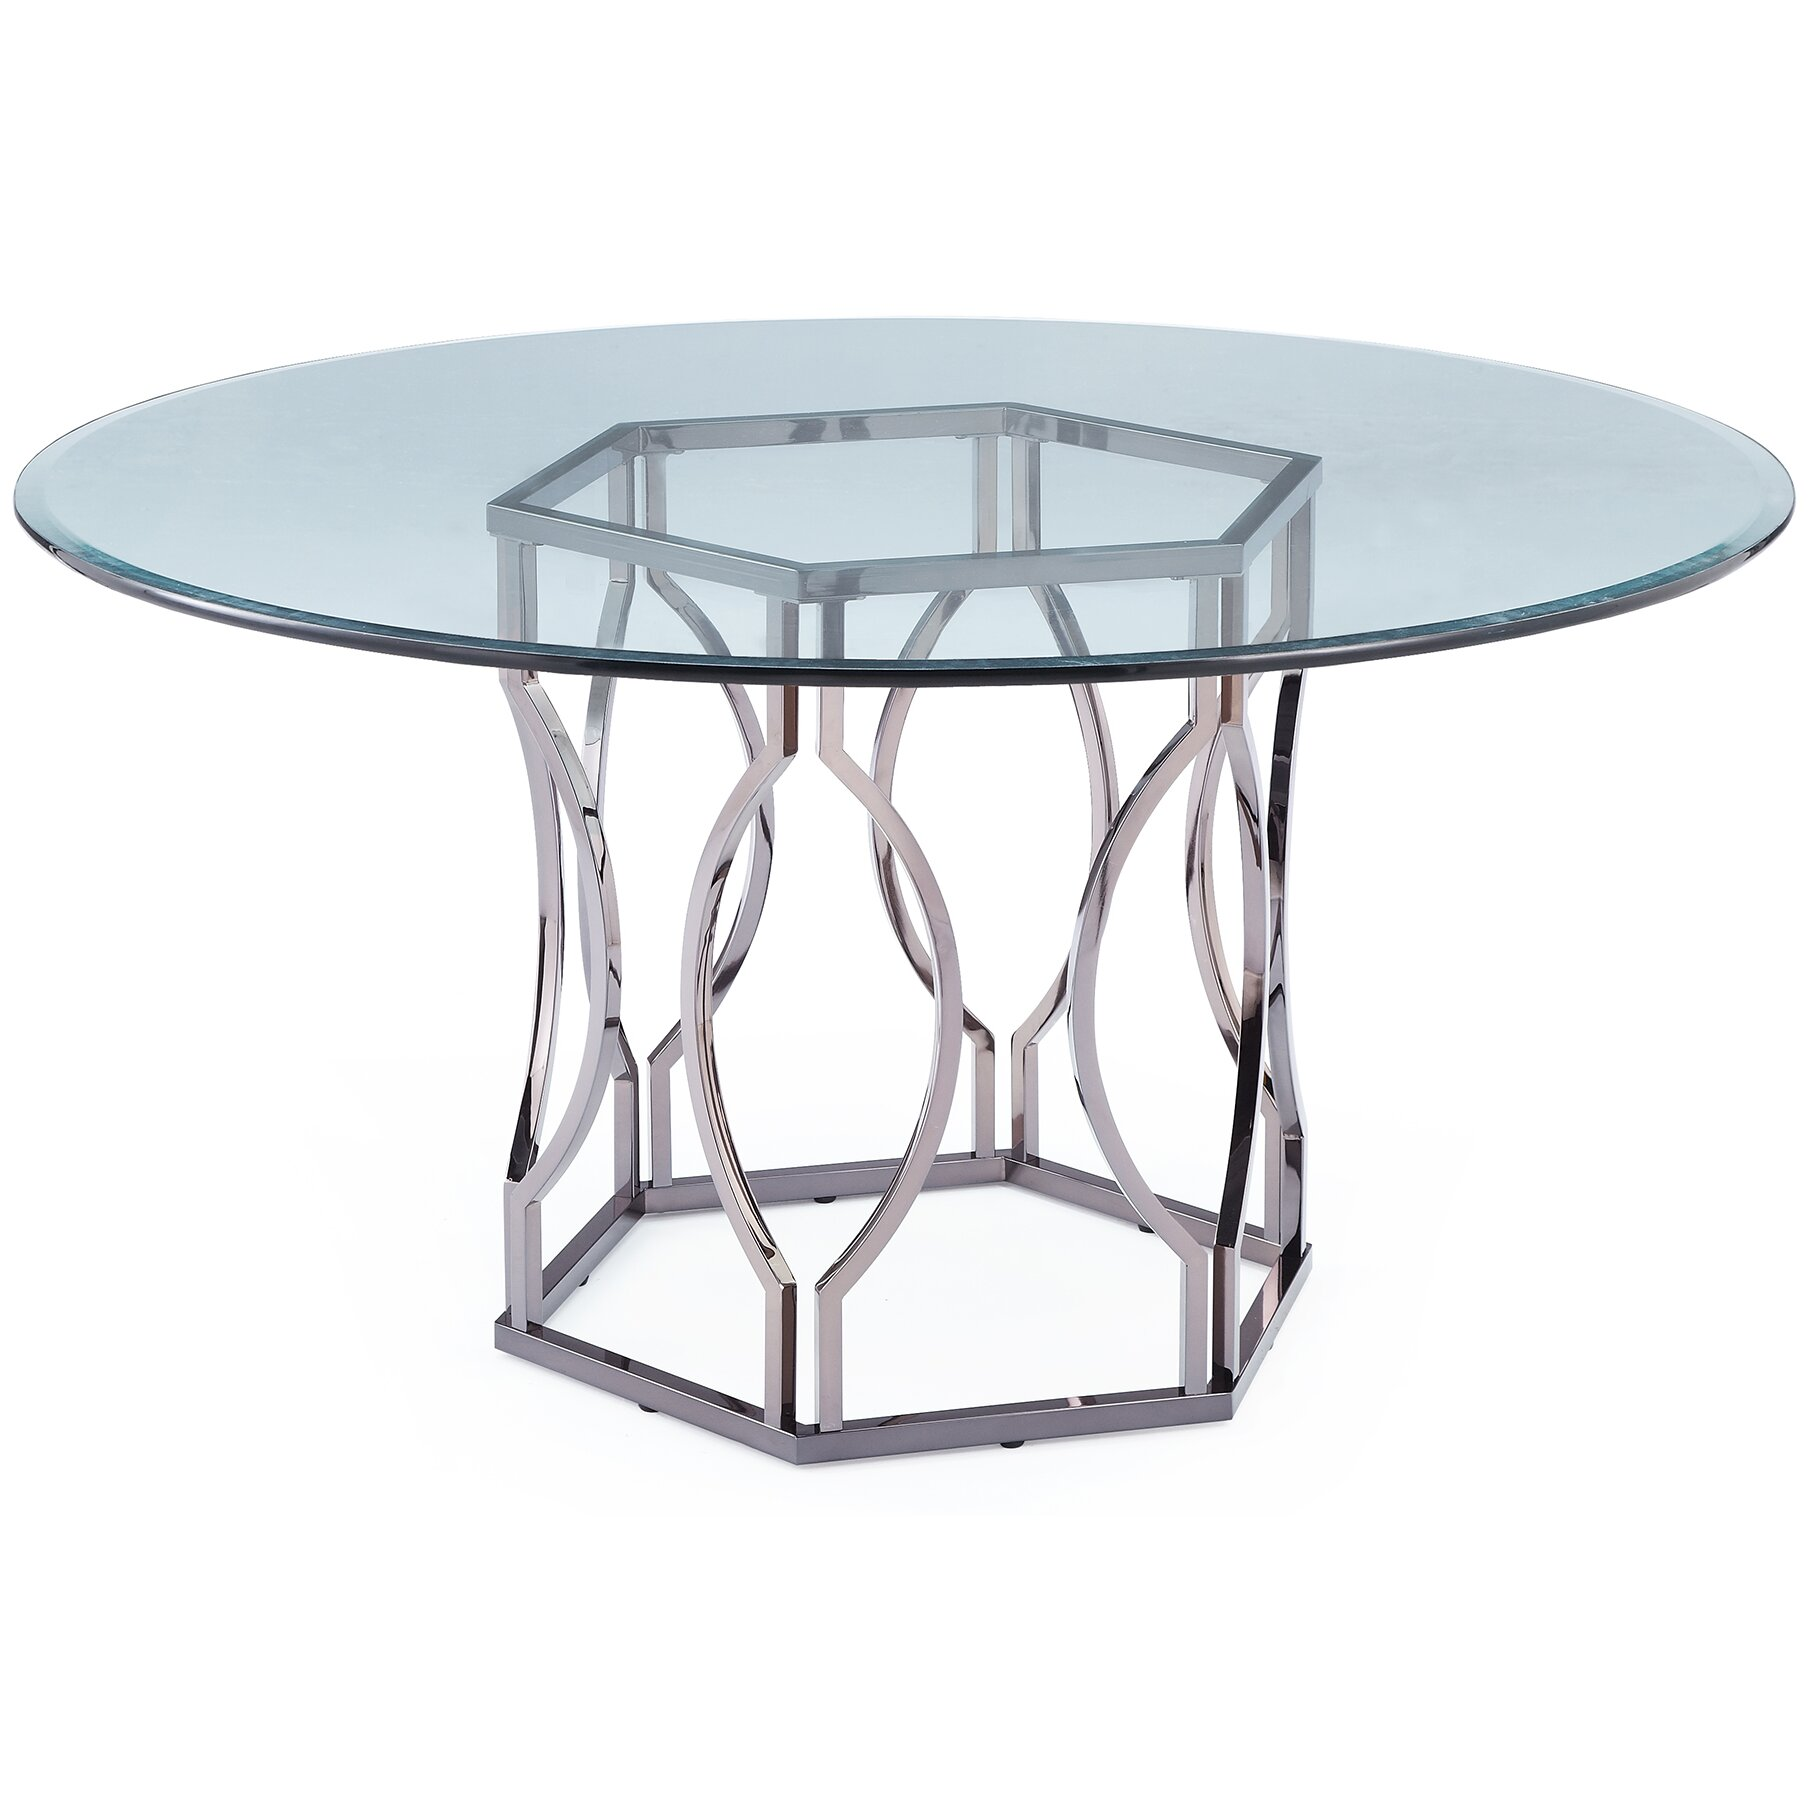 Mercer41 Viggo Round Glass Dining Table Amp Reviews Wayfair